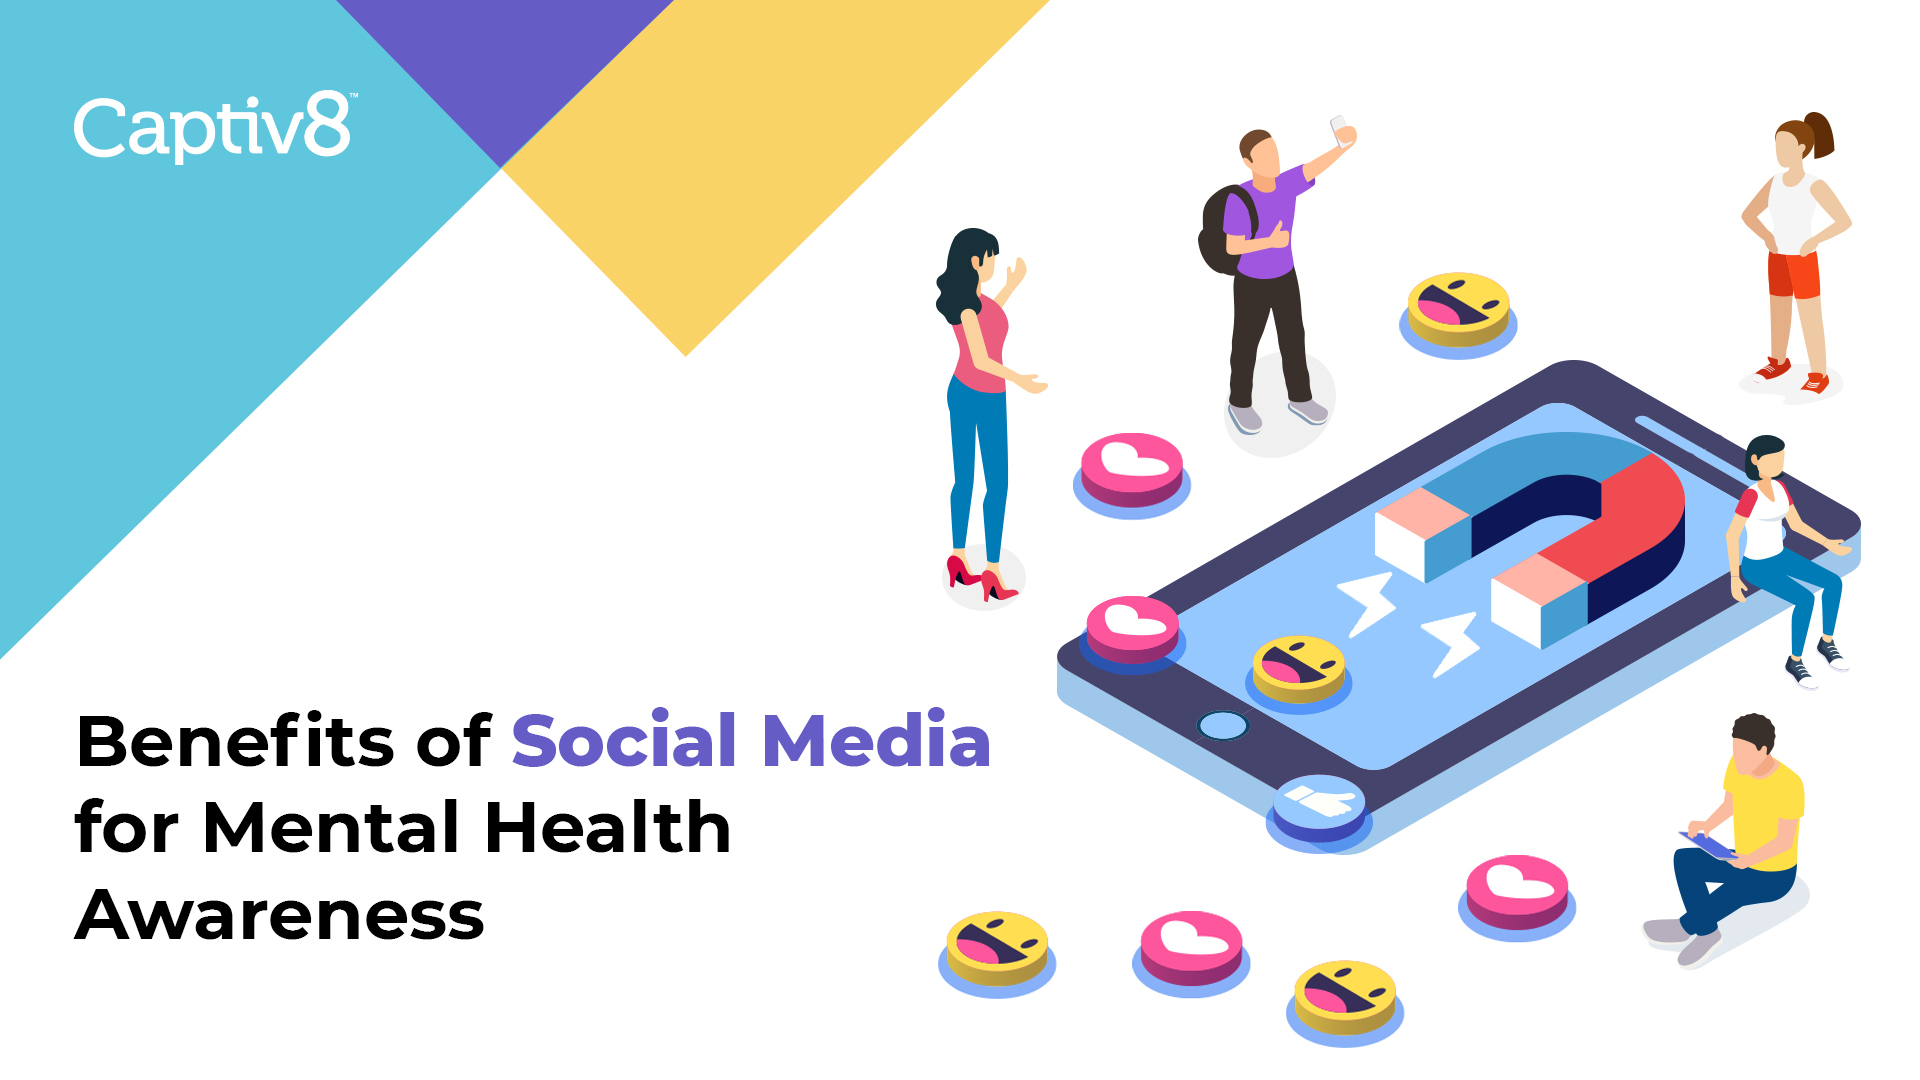 Benefits of Social Media for Mental Health Awareness